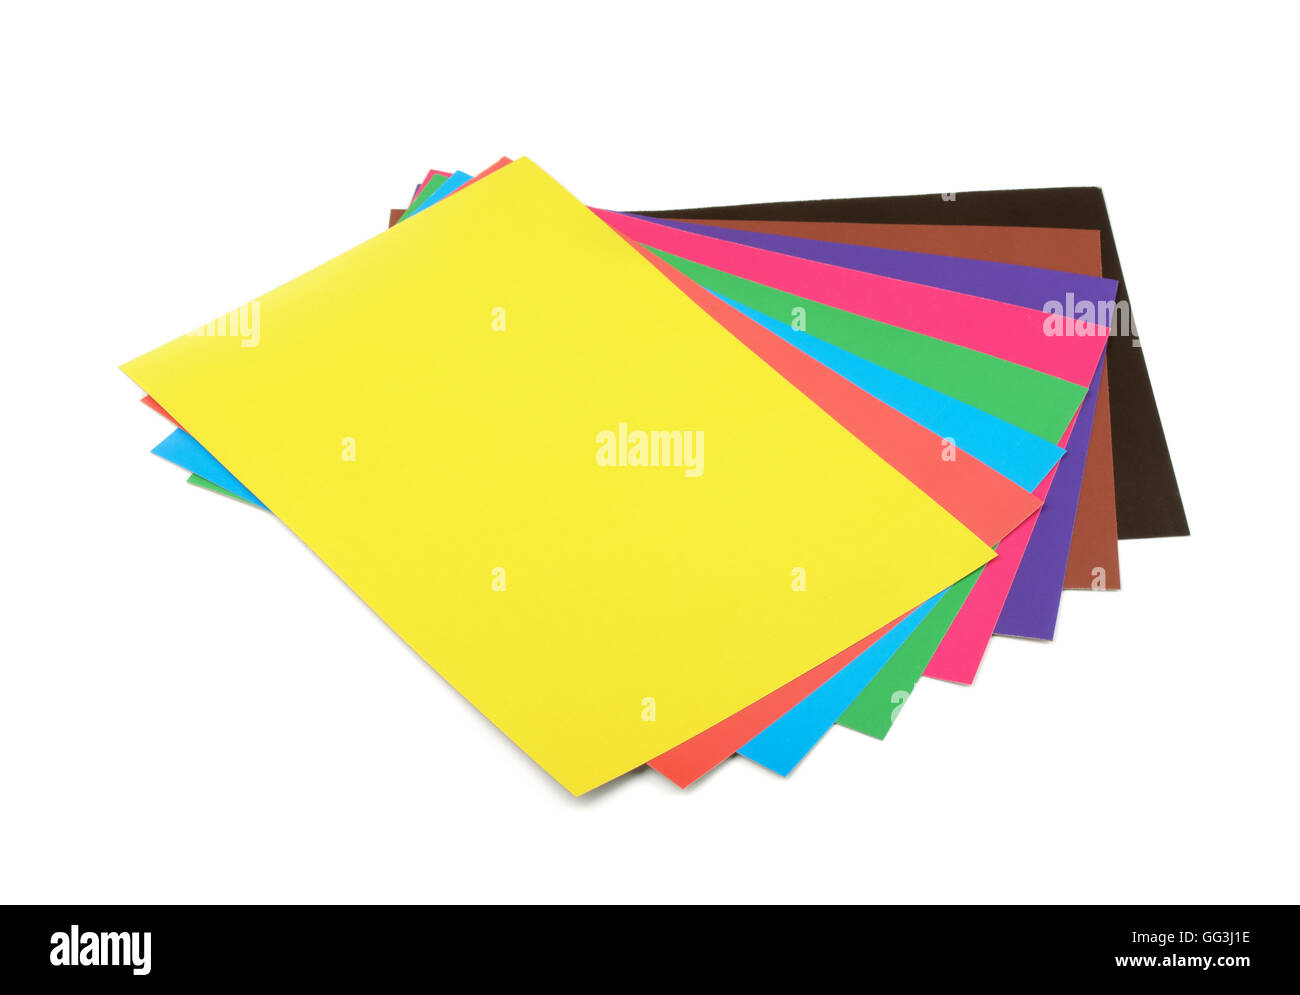 Cardboard Colors Paper Colored Stock Photos & Cardboard Colors Paper ...